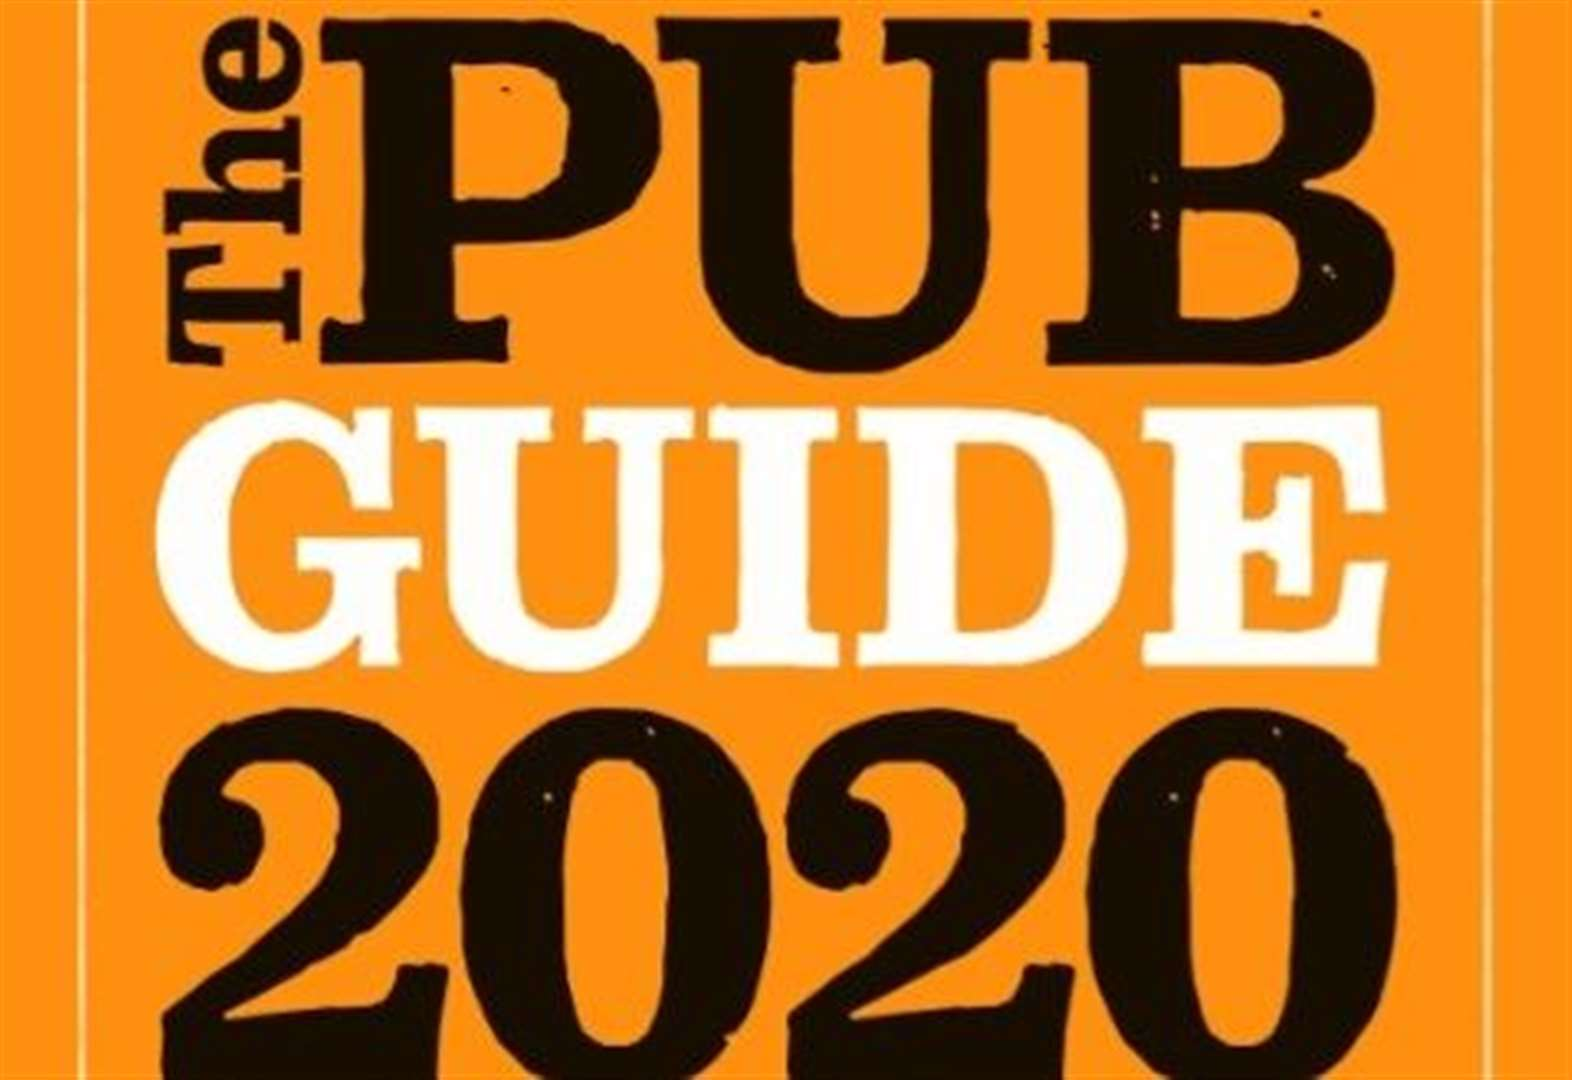 Find out if your local made it into The Pub Guide